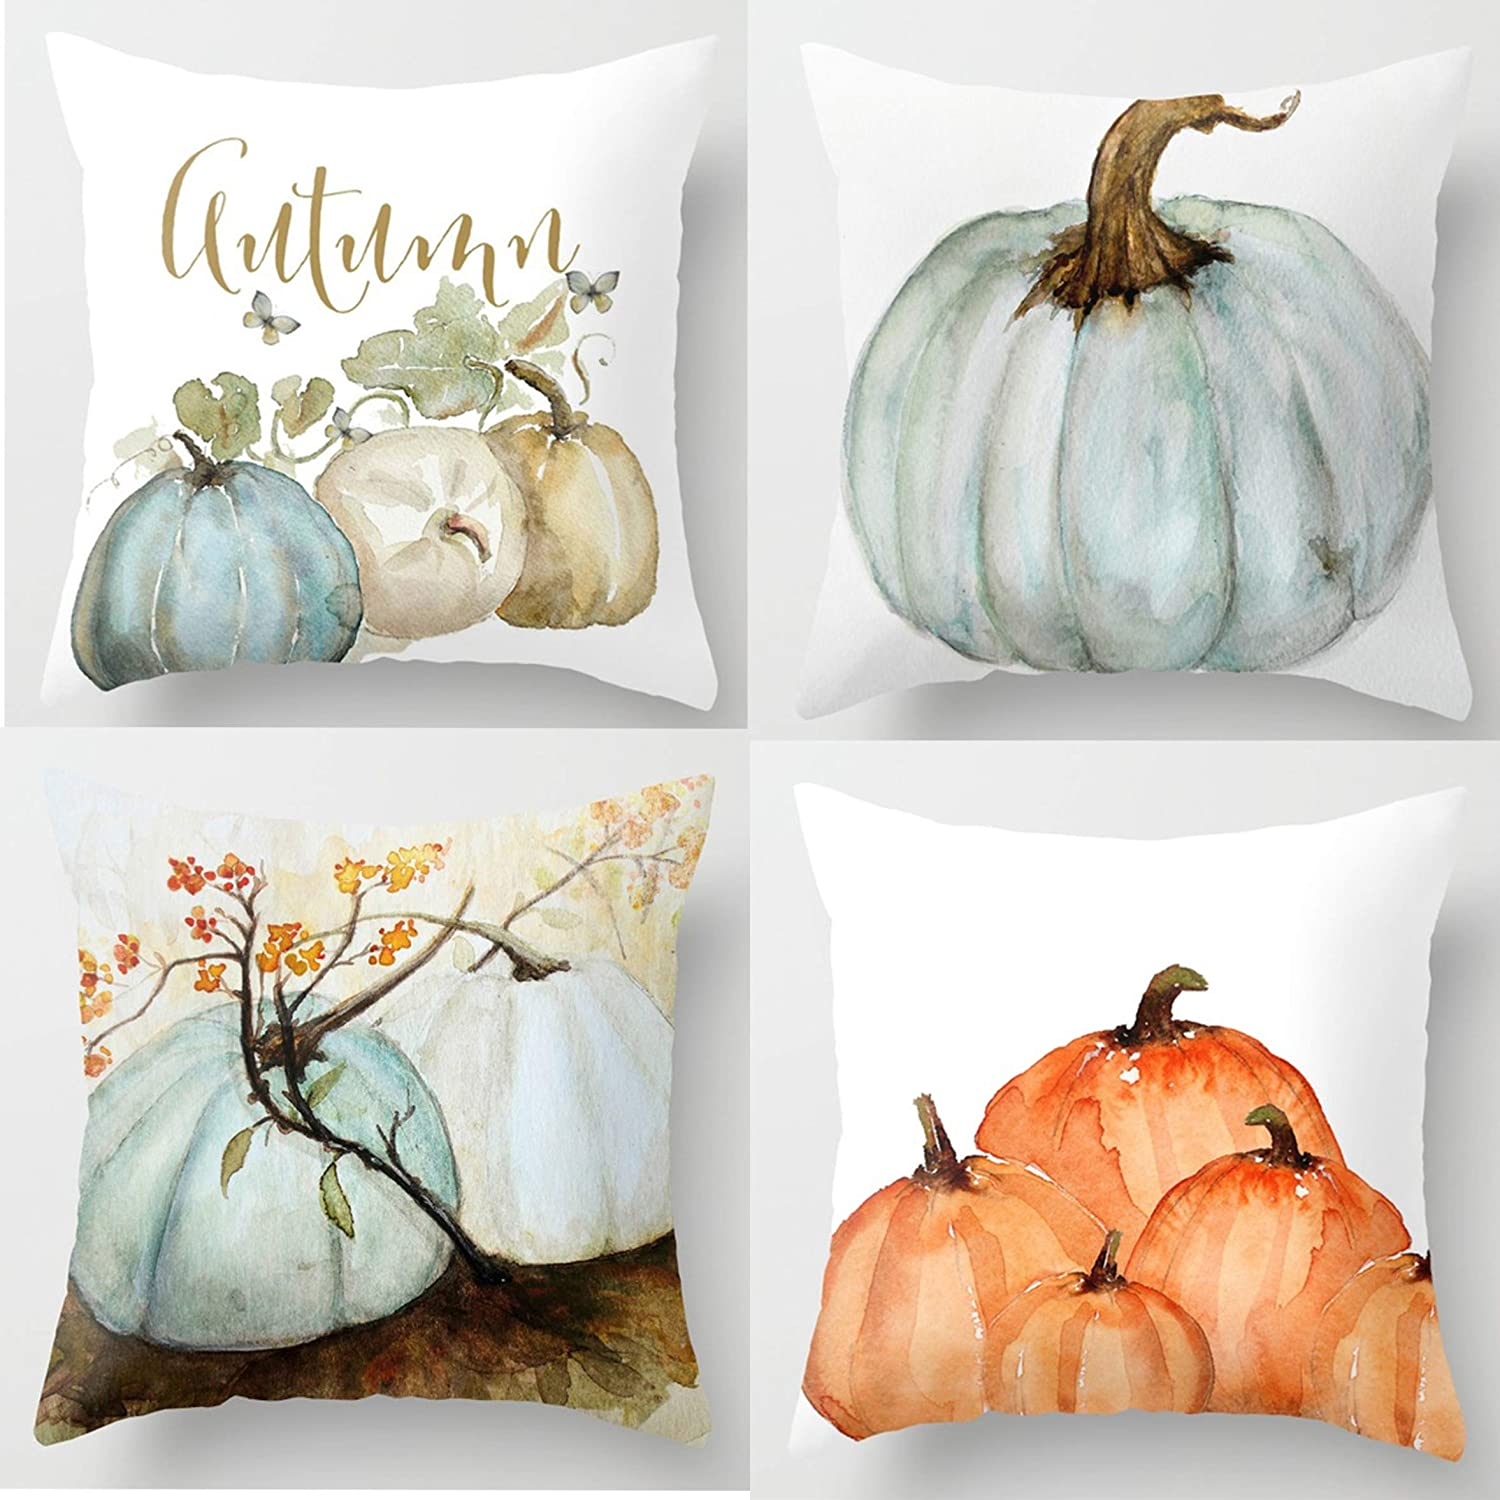 Autumn Decorations Pumpkin Pillow Covers Set of 4 Fall Decor Grateful Thanksgiving Throw Pillow Covers Cushion Cover 18 X 18 QY